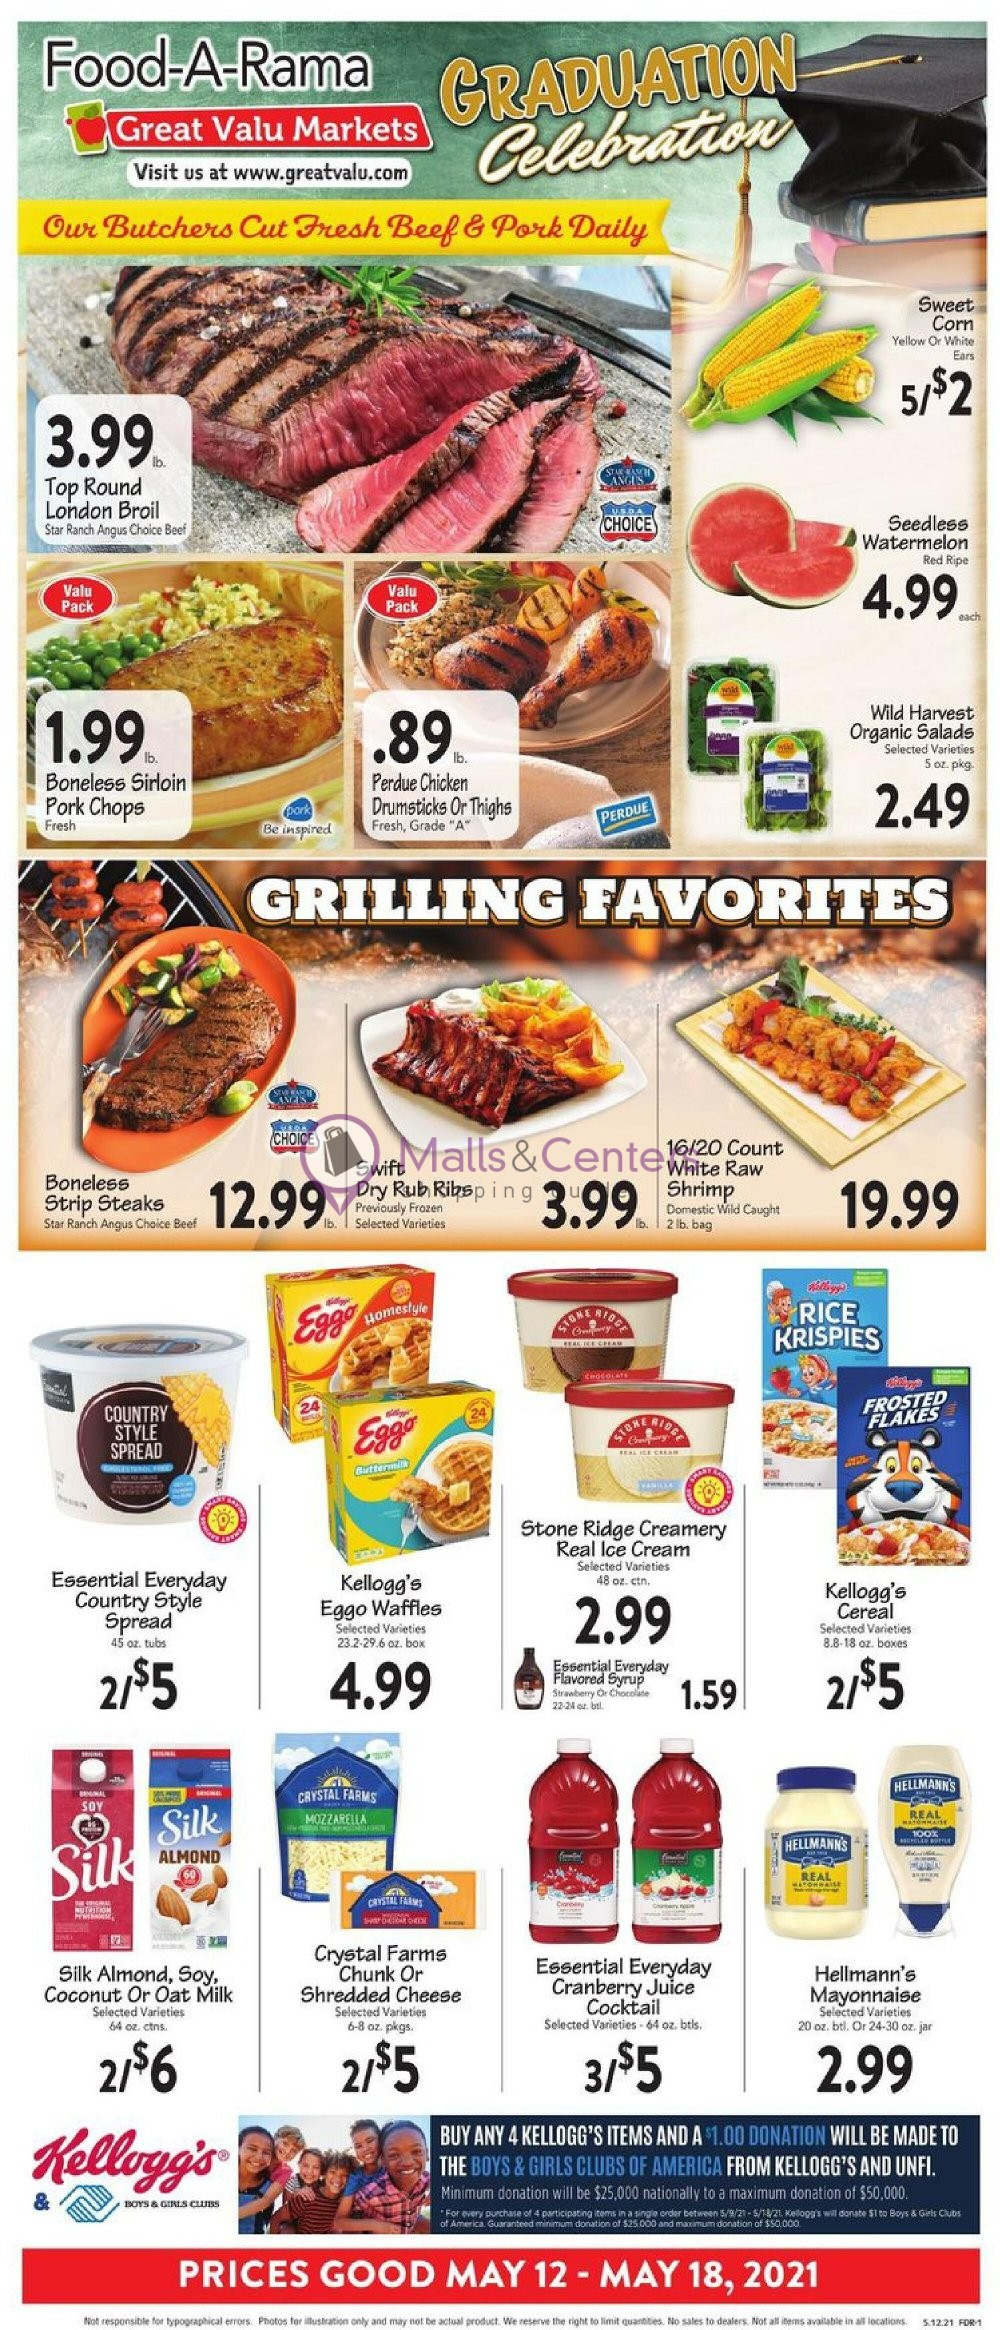 weekly ads Great Valu Markets - page 1 - mallscenters.com